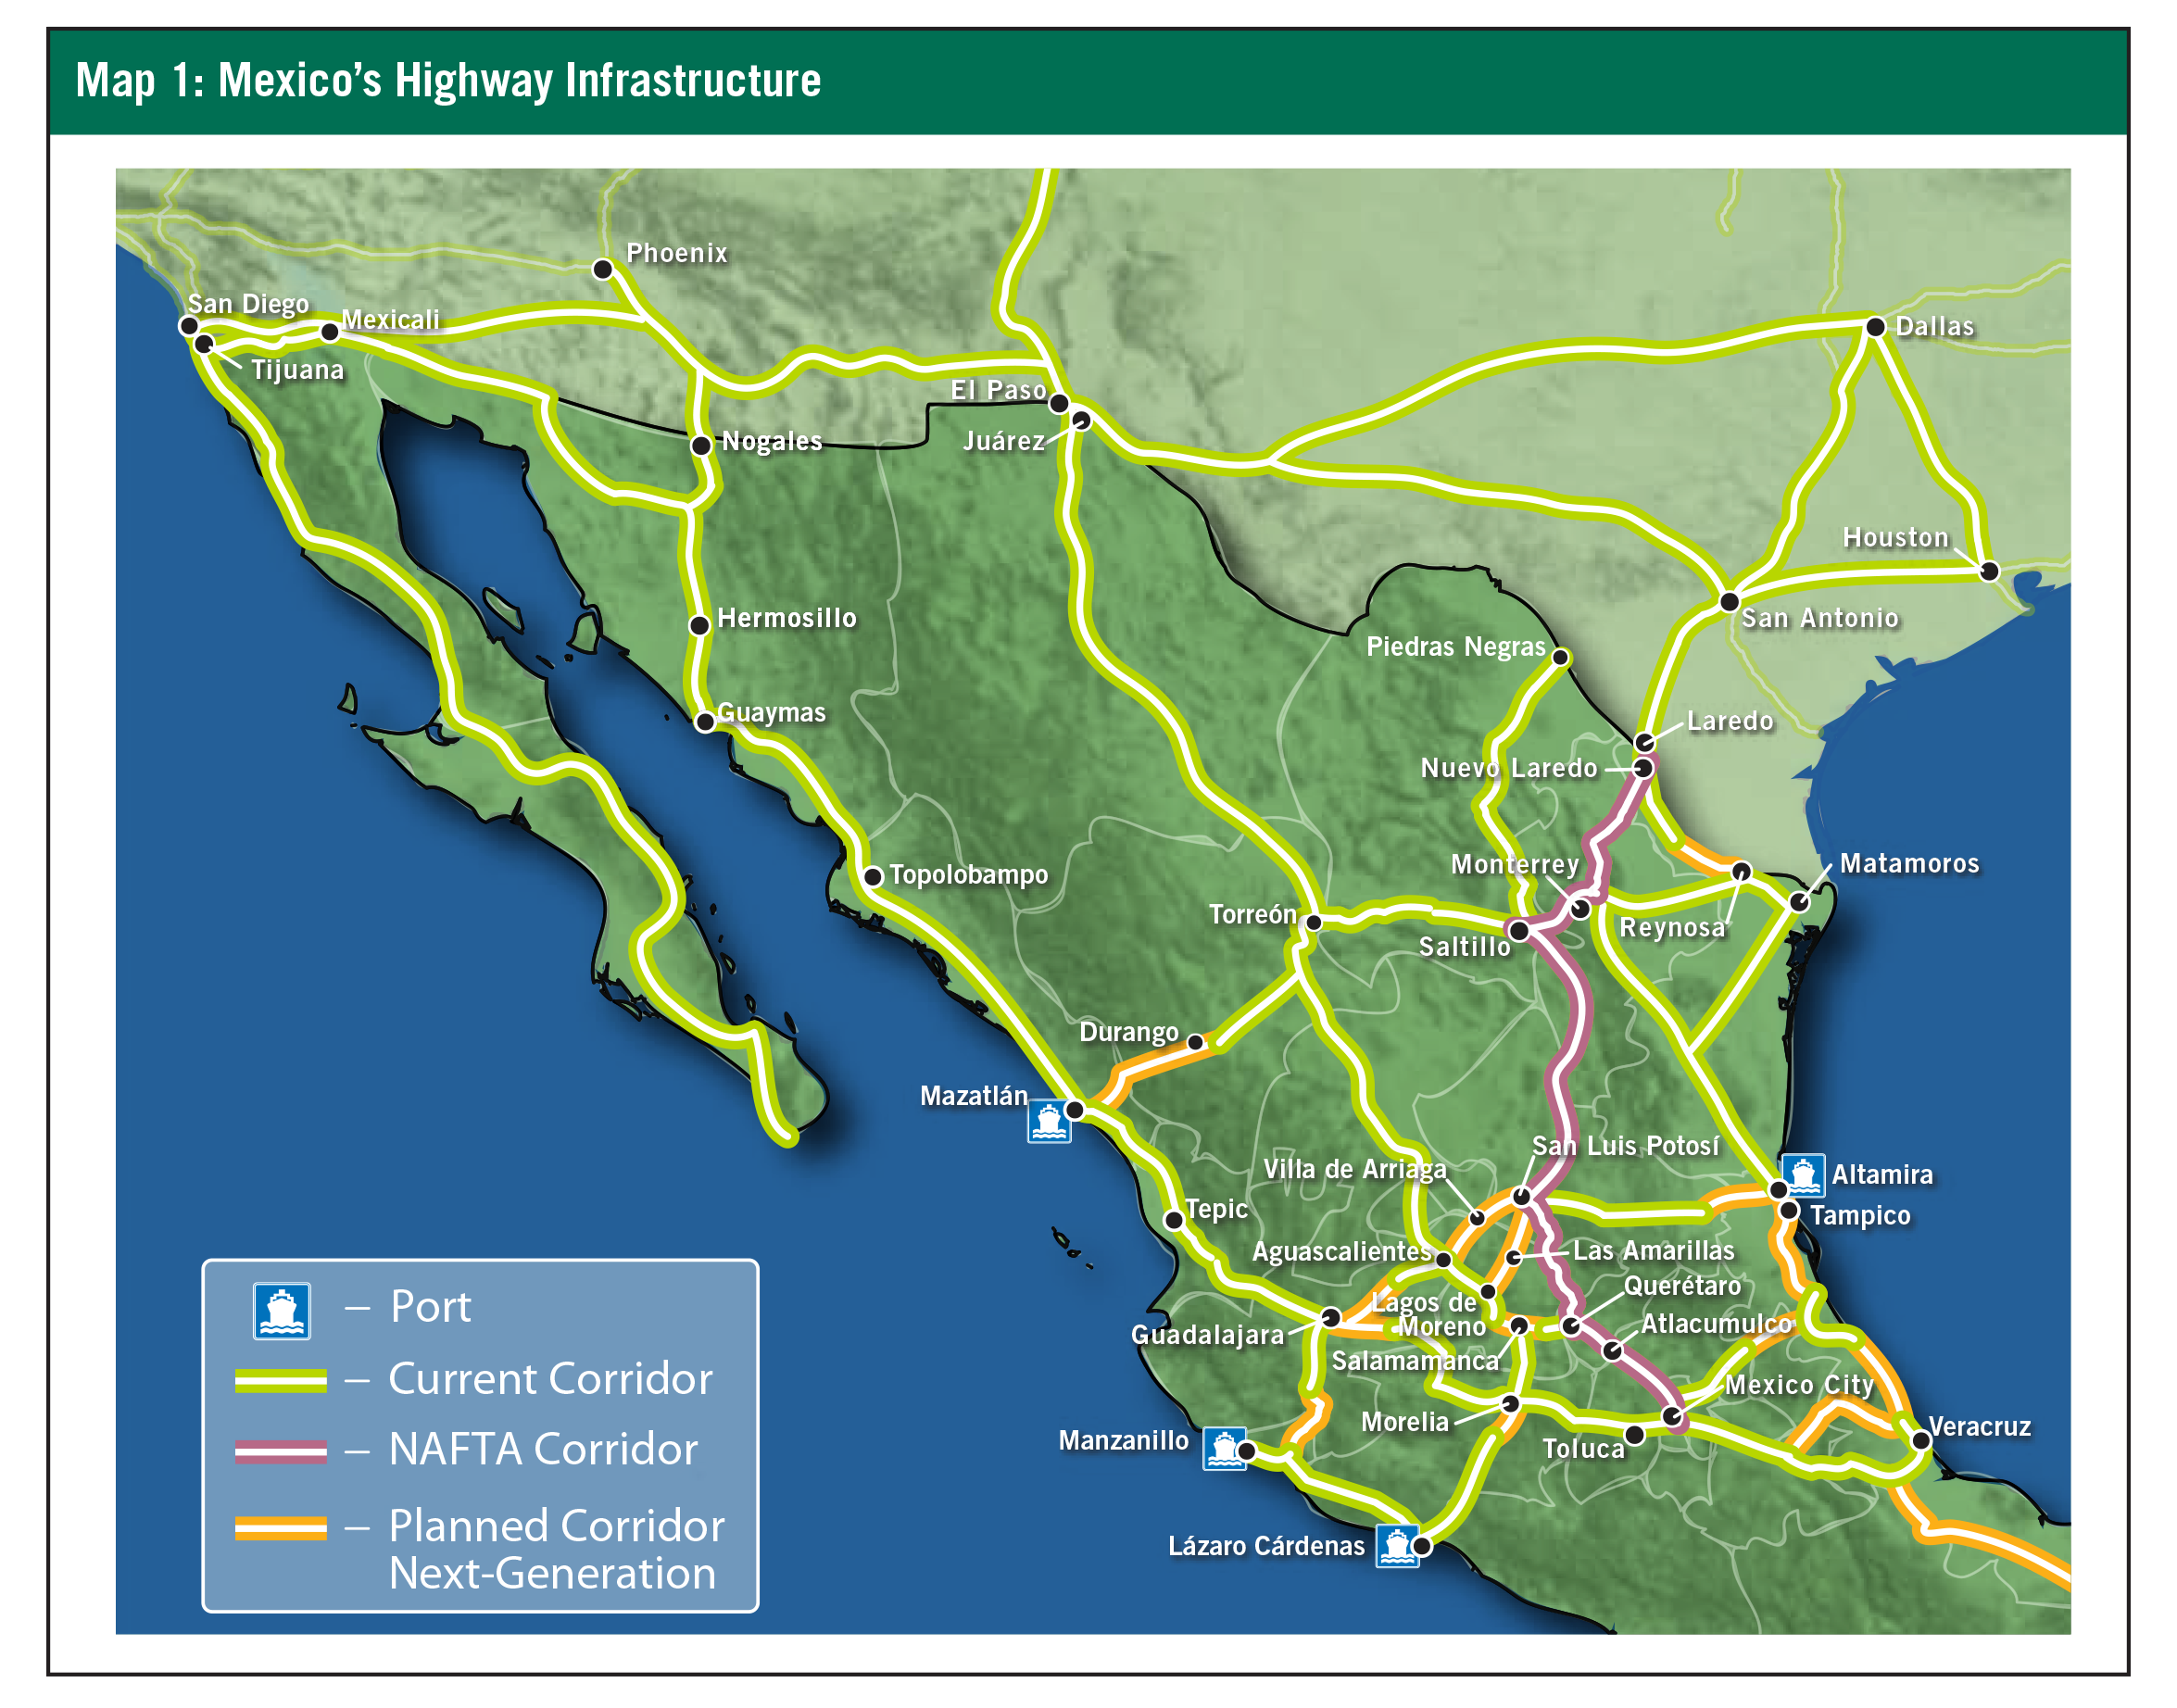 Map 1: Mexico's Highway Infrastructure